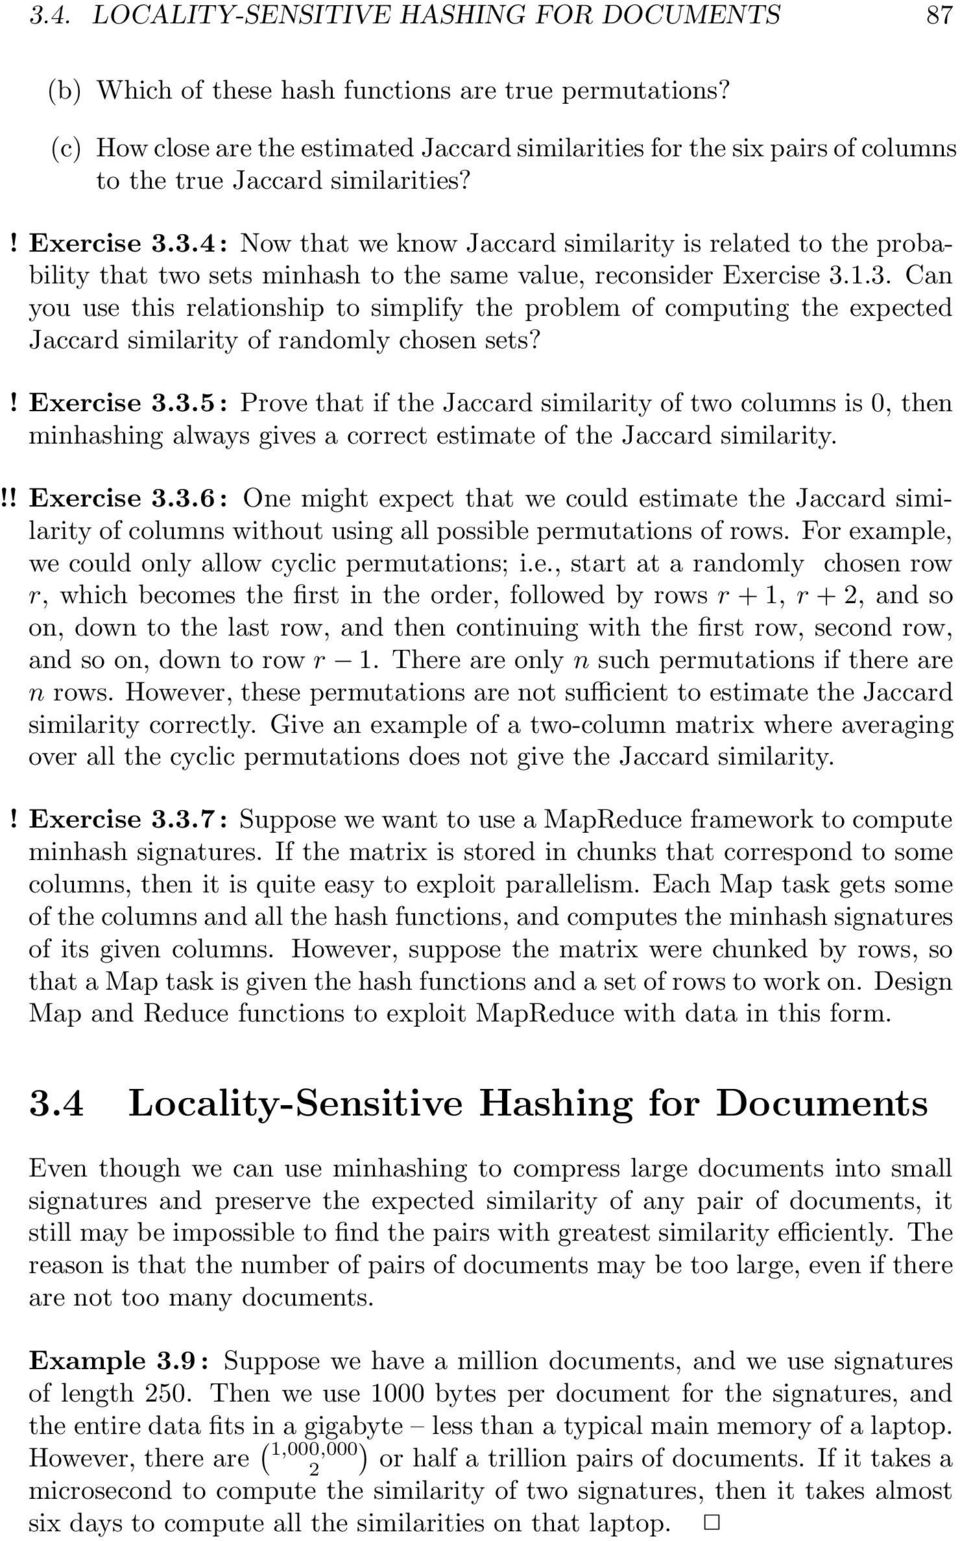 3.4: Now that we know Jaccard similarity is related to the probability that two sets minhash to the same value, reconsider Exercise 3.1.3. Can you use this relationship to simplify the problem of computing the expected Jaccard similarity of randomly chosen sets?